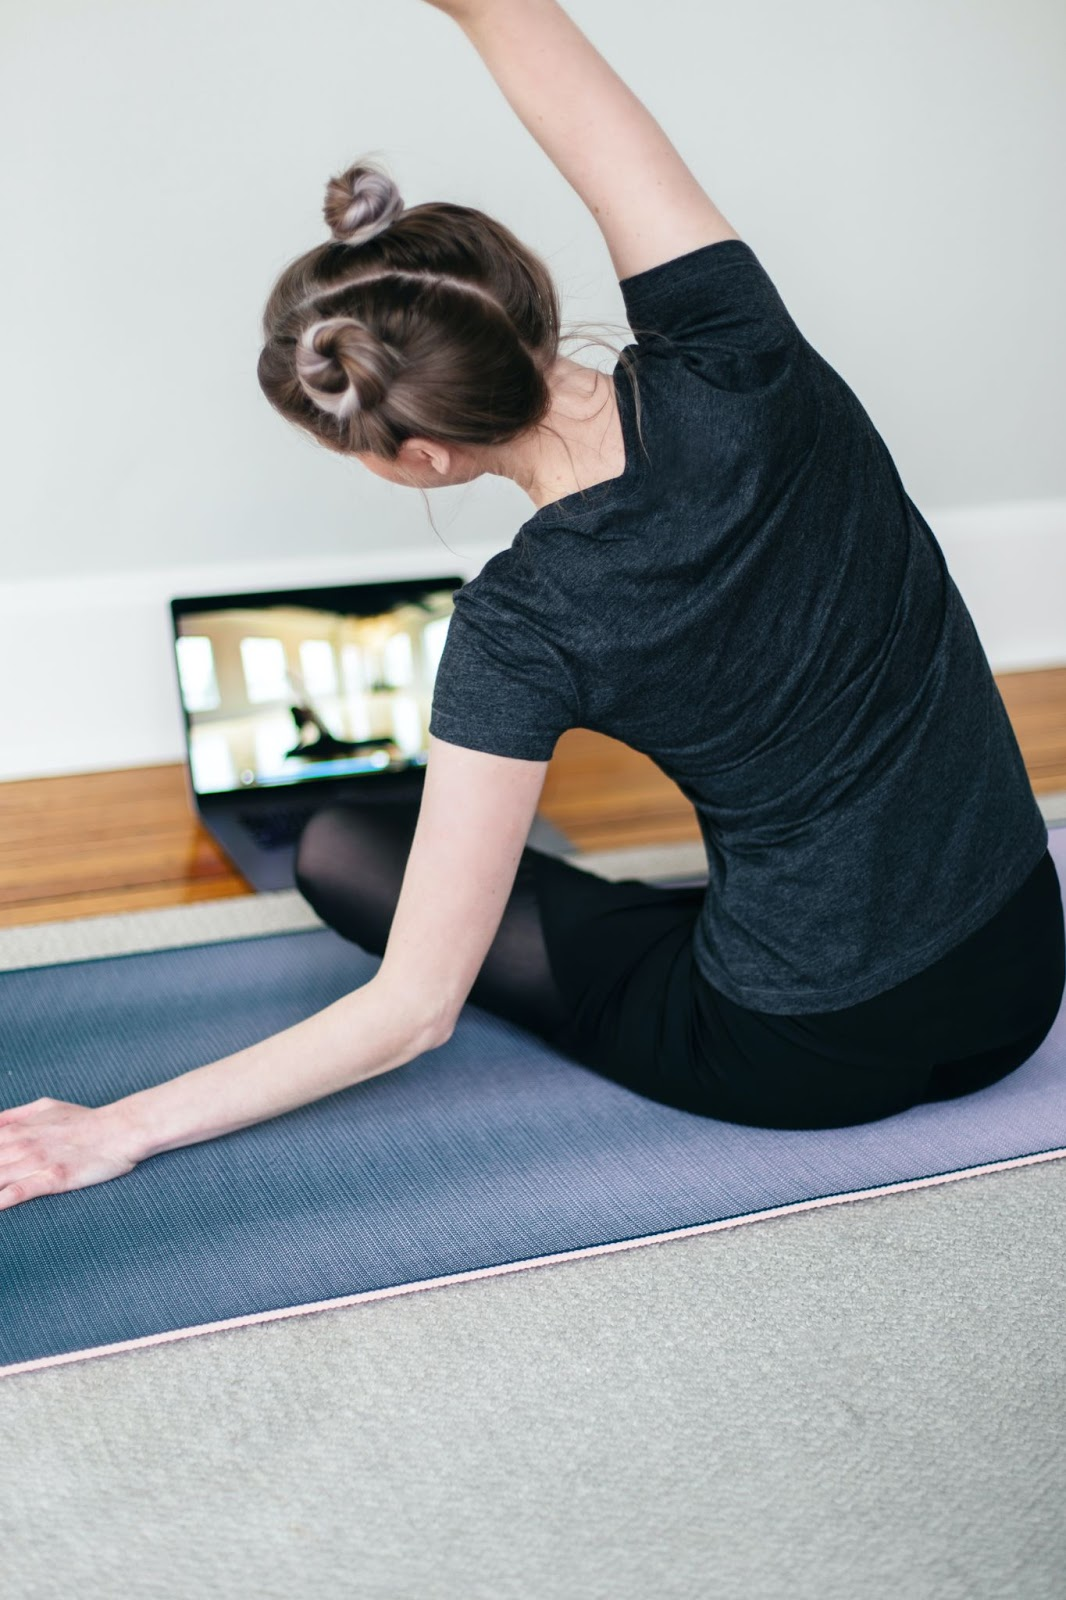 Omnify's Zoom-integration brought yoga communities closer during the pandemic